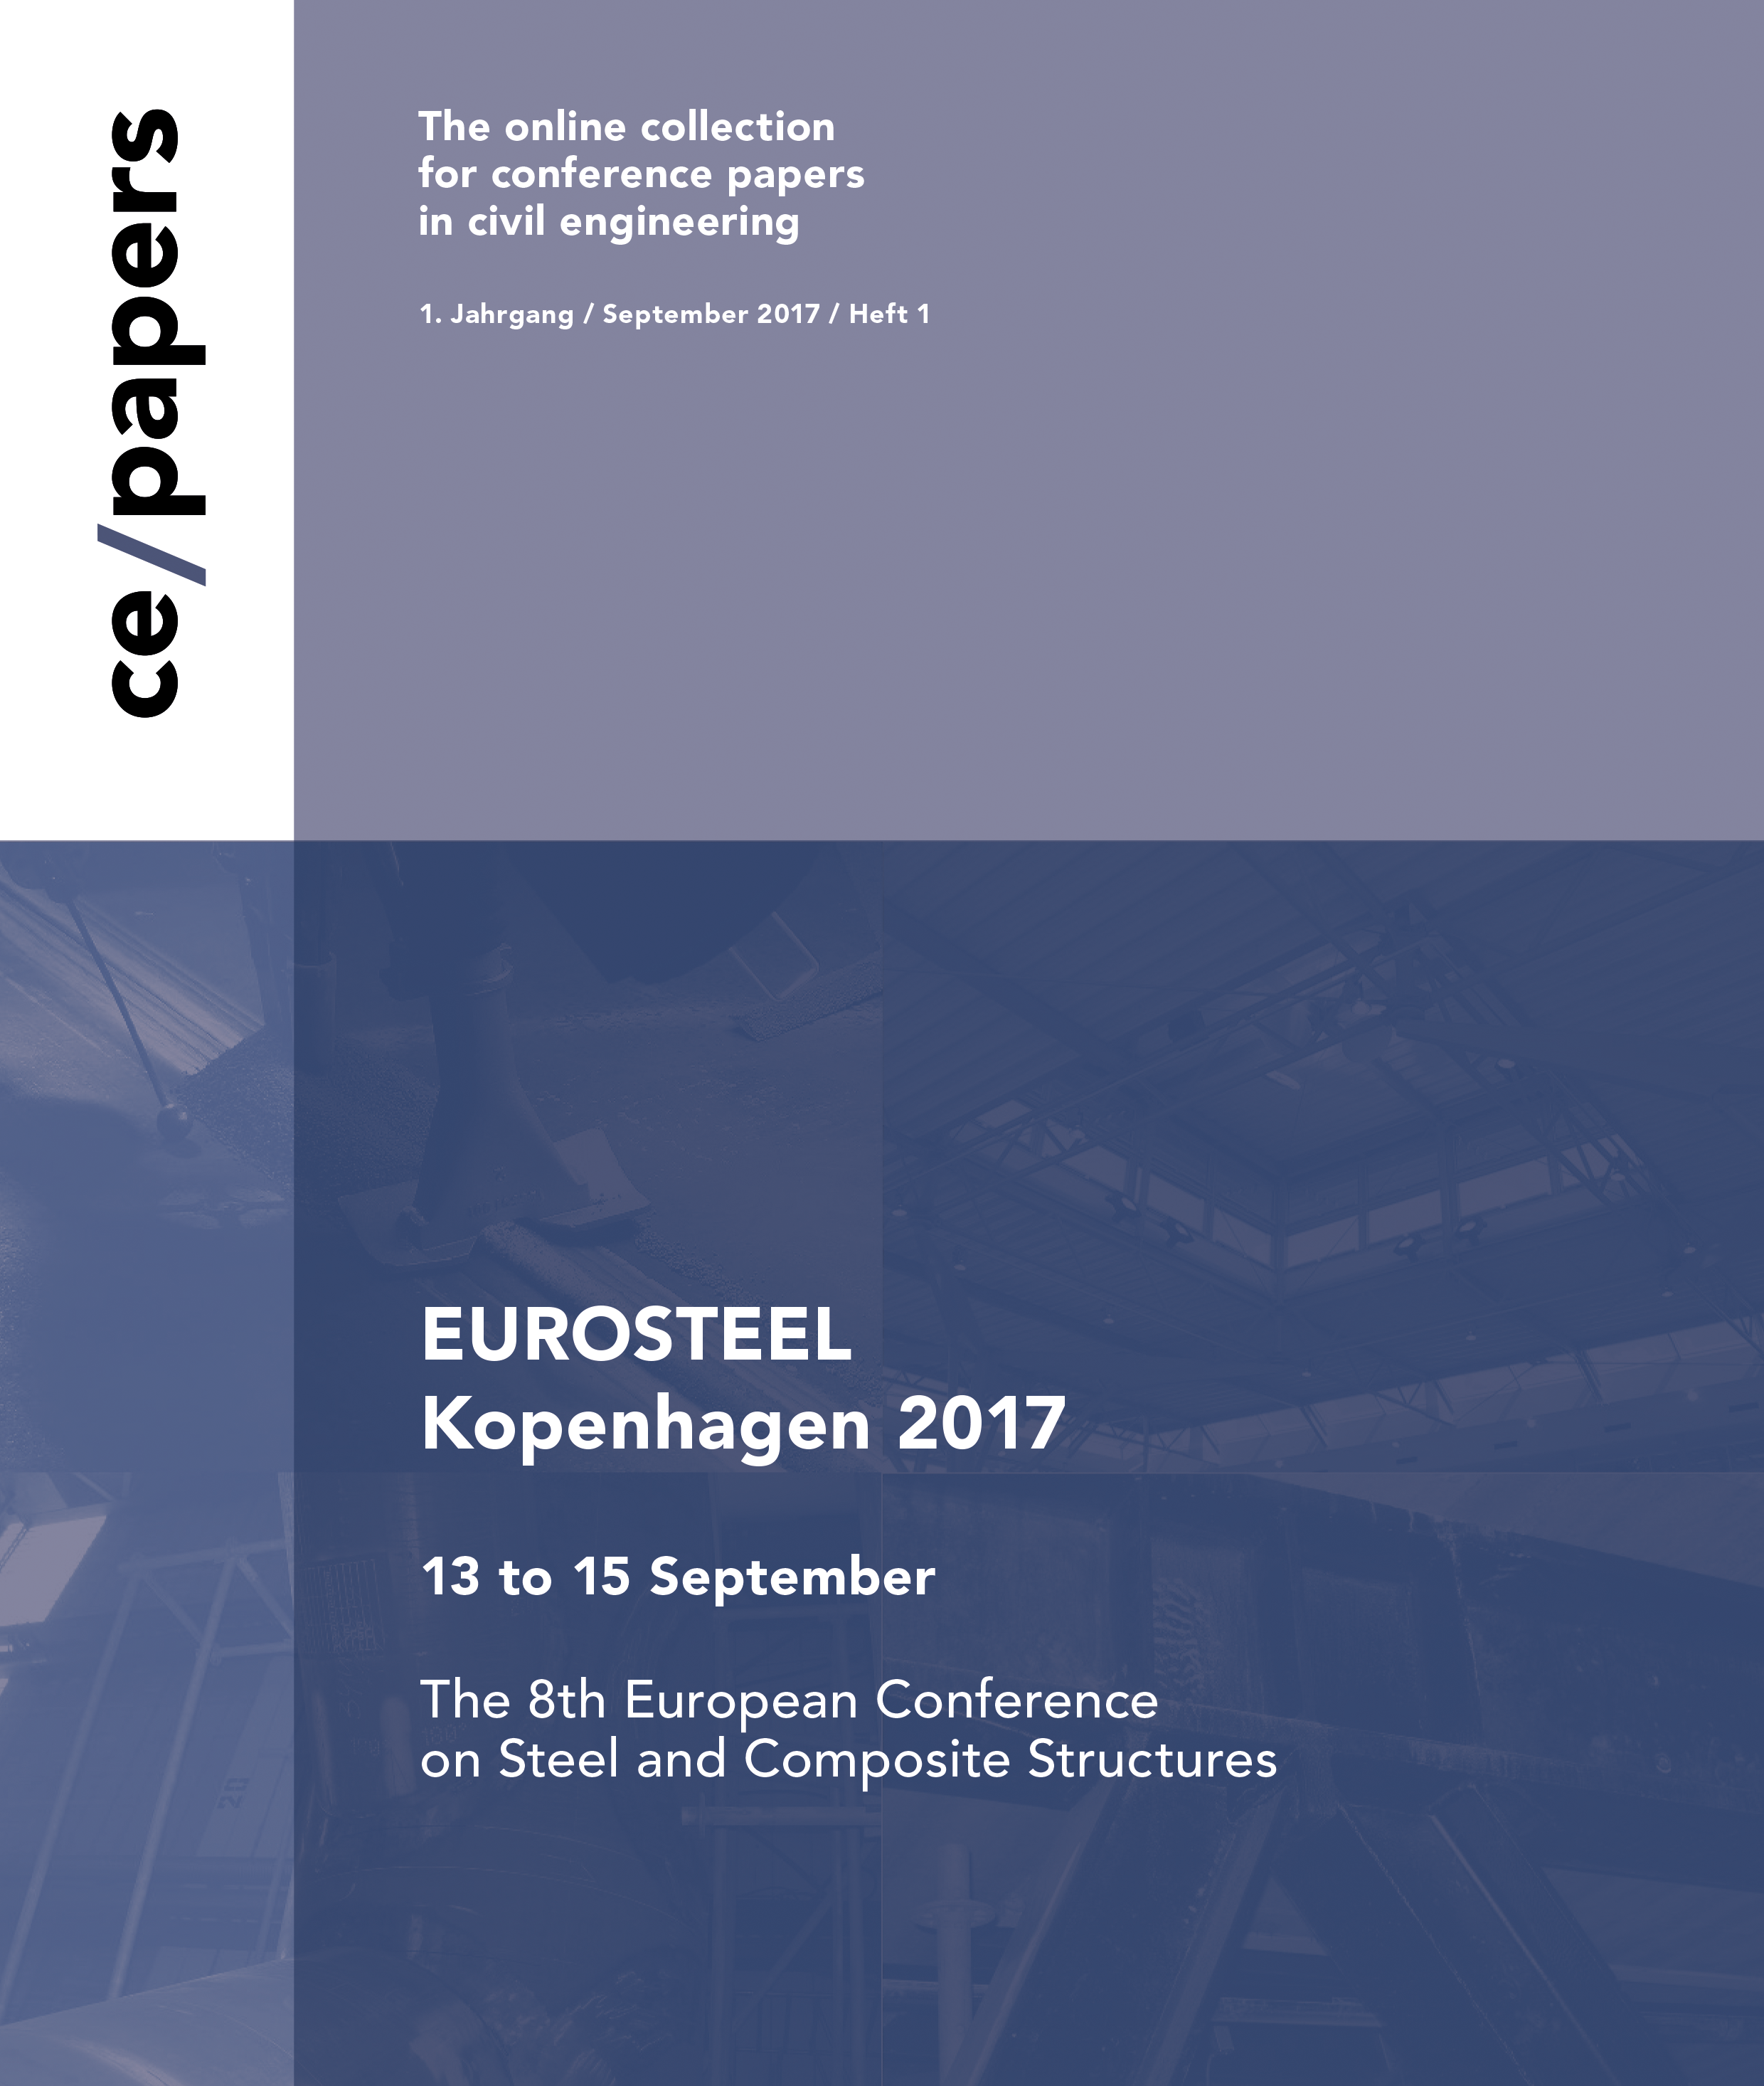 ce/papers will be the conference journal of the Eurosteel 2017